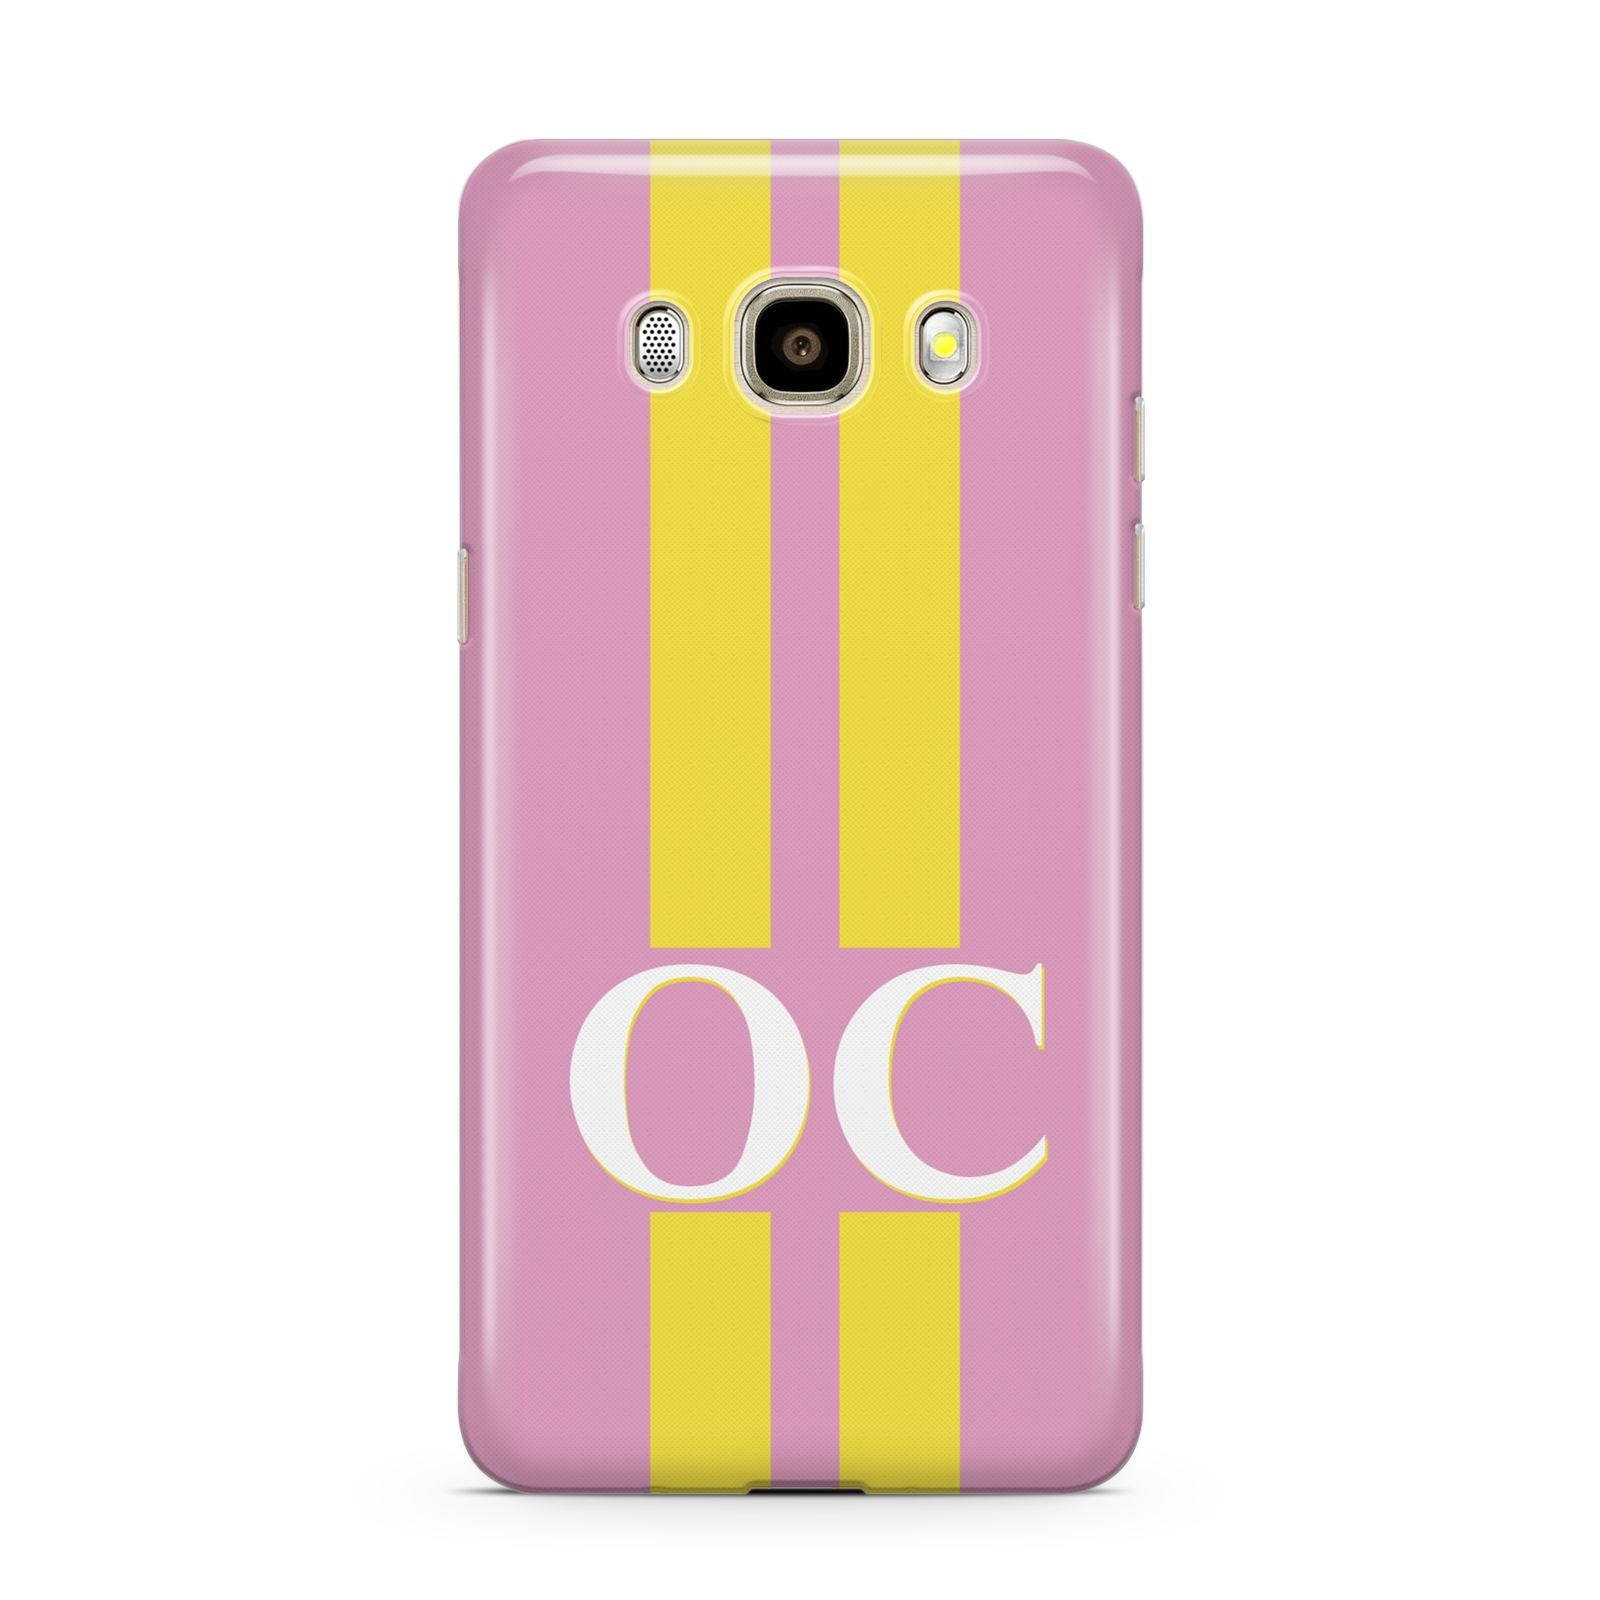 Pink Personalised Initials Samsung Galaxy J7 2016 Case on gold phone